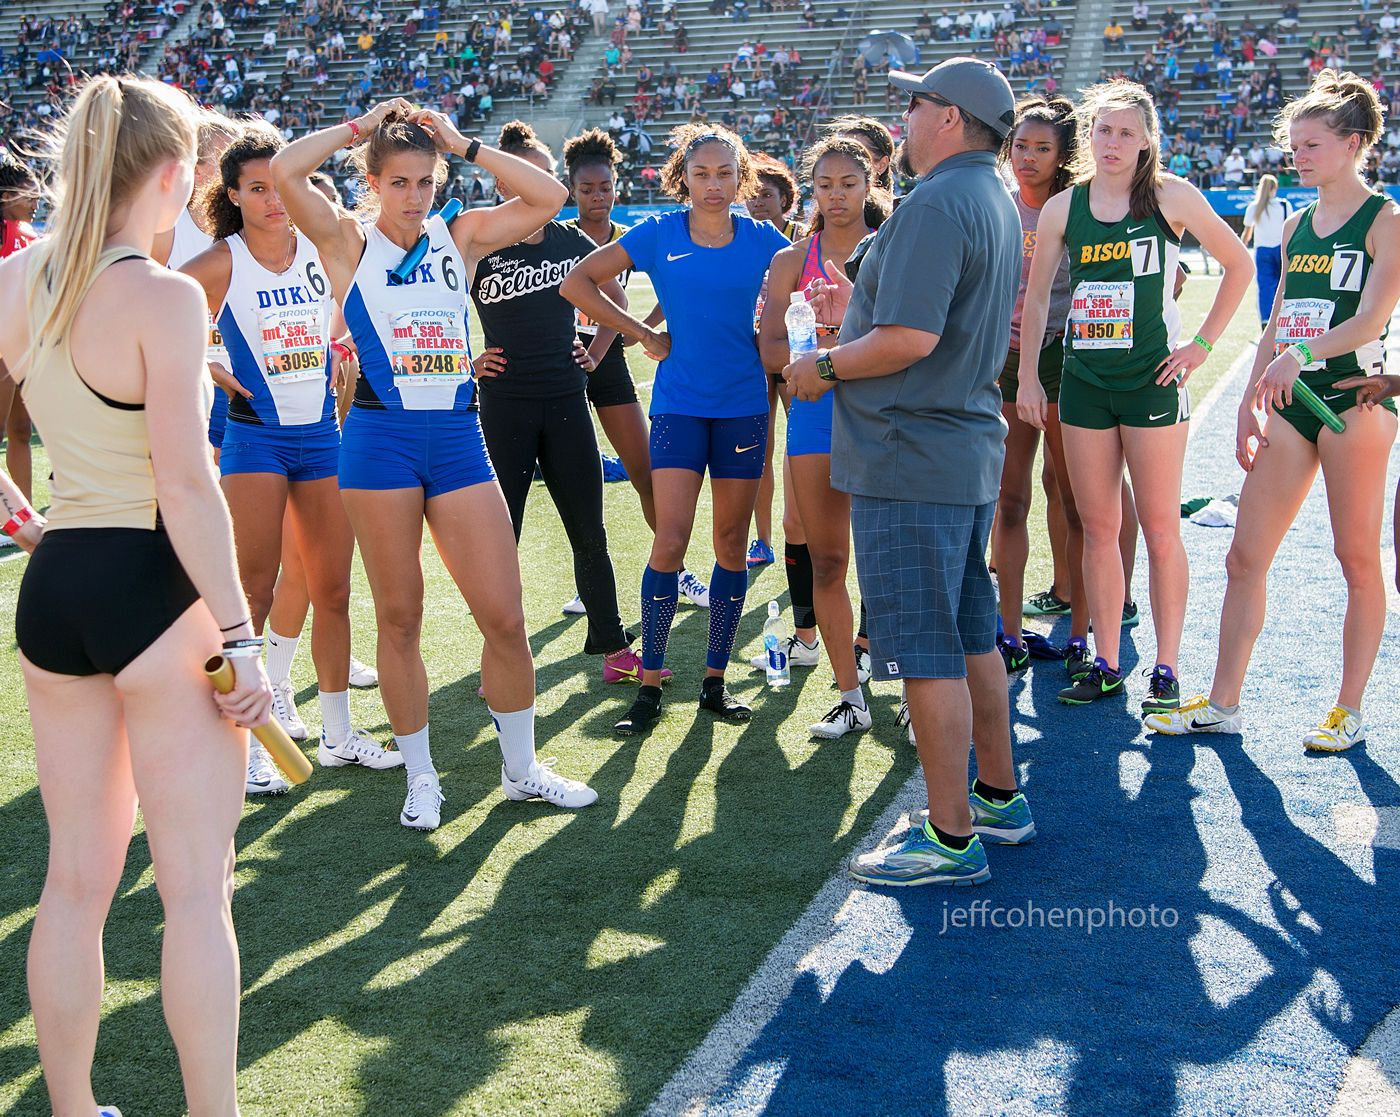 1mtsacrelays_4_16_16_af_4x400_pre_race__jeff_cohen_photo_3999_web.jpg